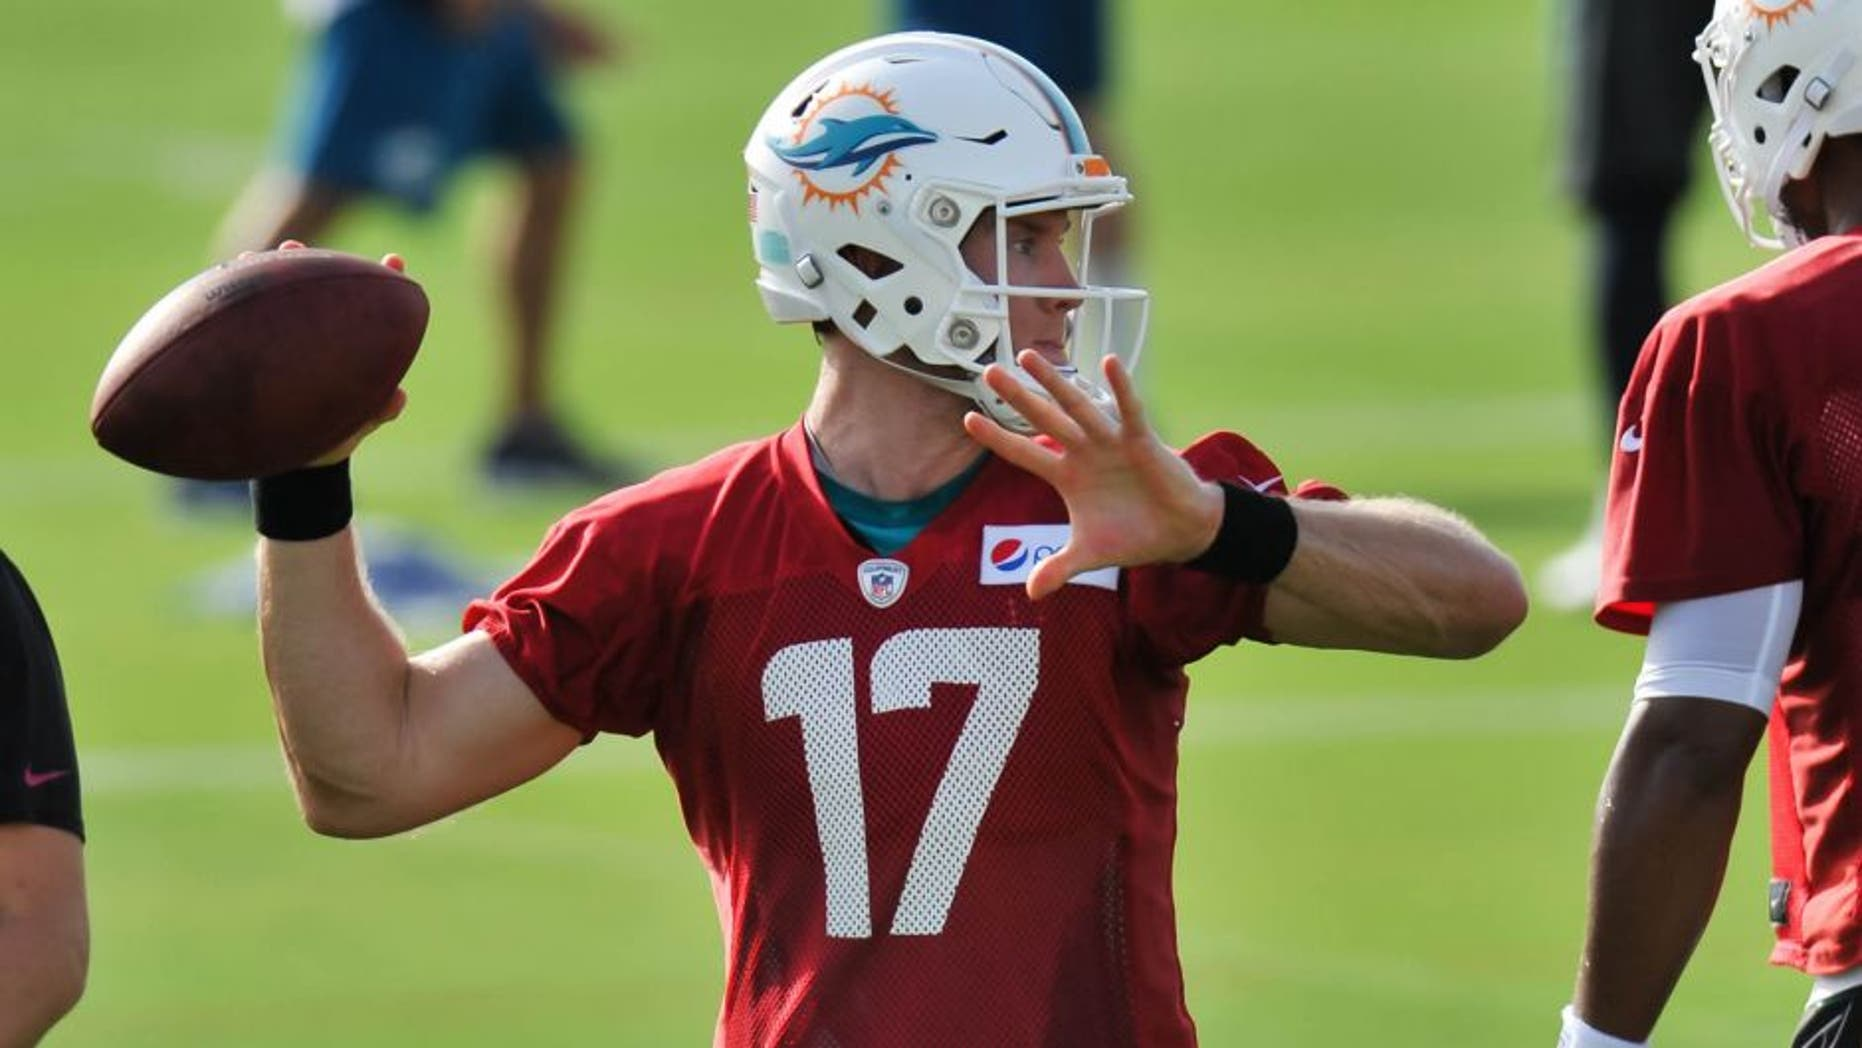 Jul 31, 2015; Davie, FL, USA; Miami Dolphins quarterback Ryan Tannehill (17) during practice drills at Doctors Hospital Training Facility. Mandatory Credit: Steve Mitchell-USA TODAY Sports